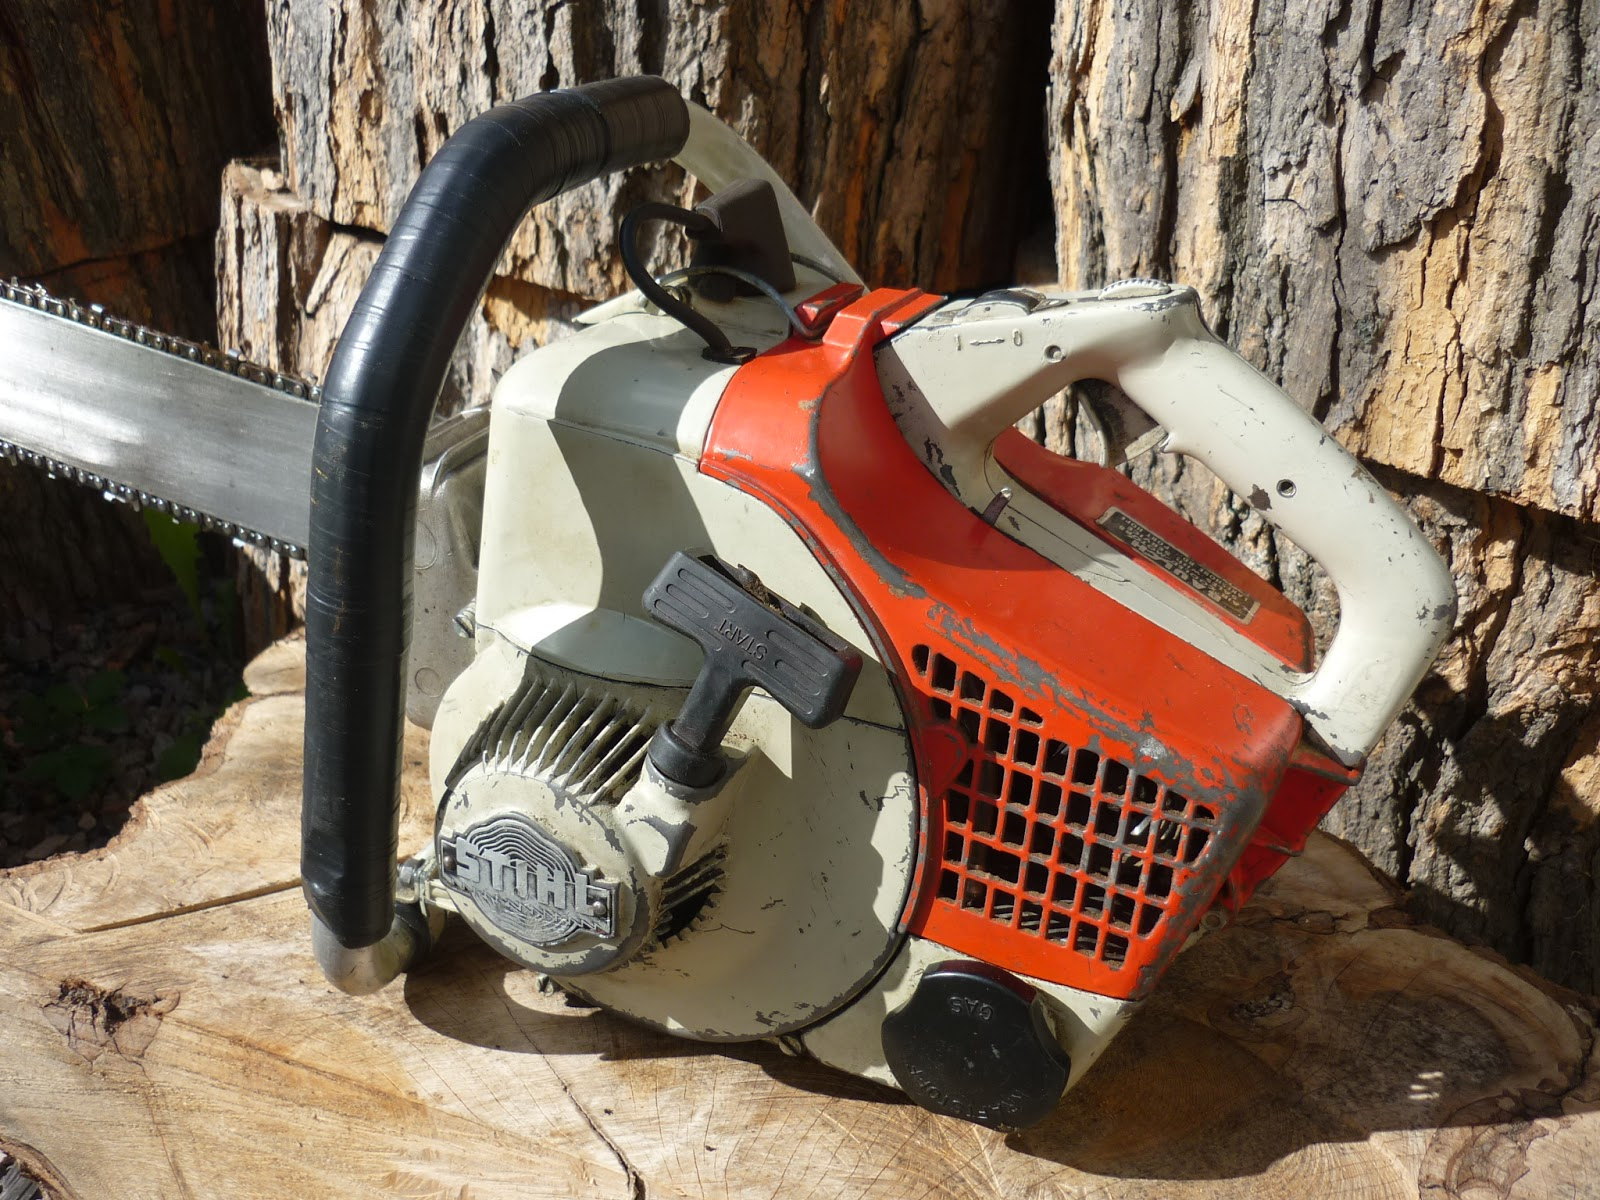 VINTAGE CHAINSAW COLLECTION: STIHL 07S